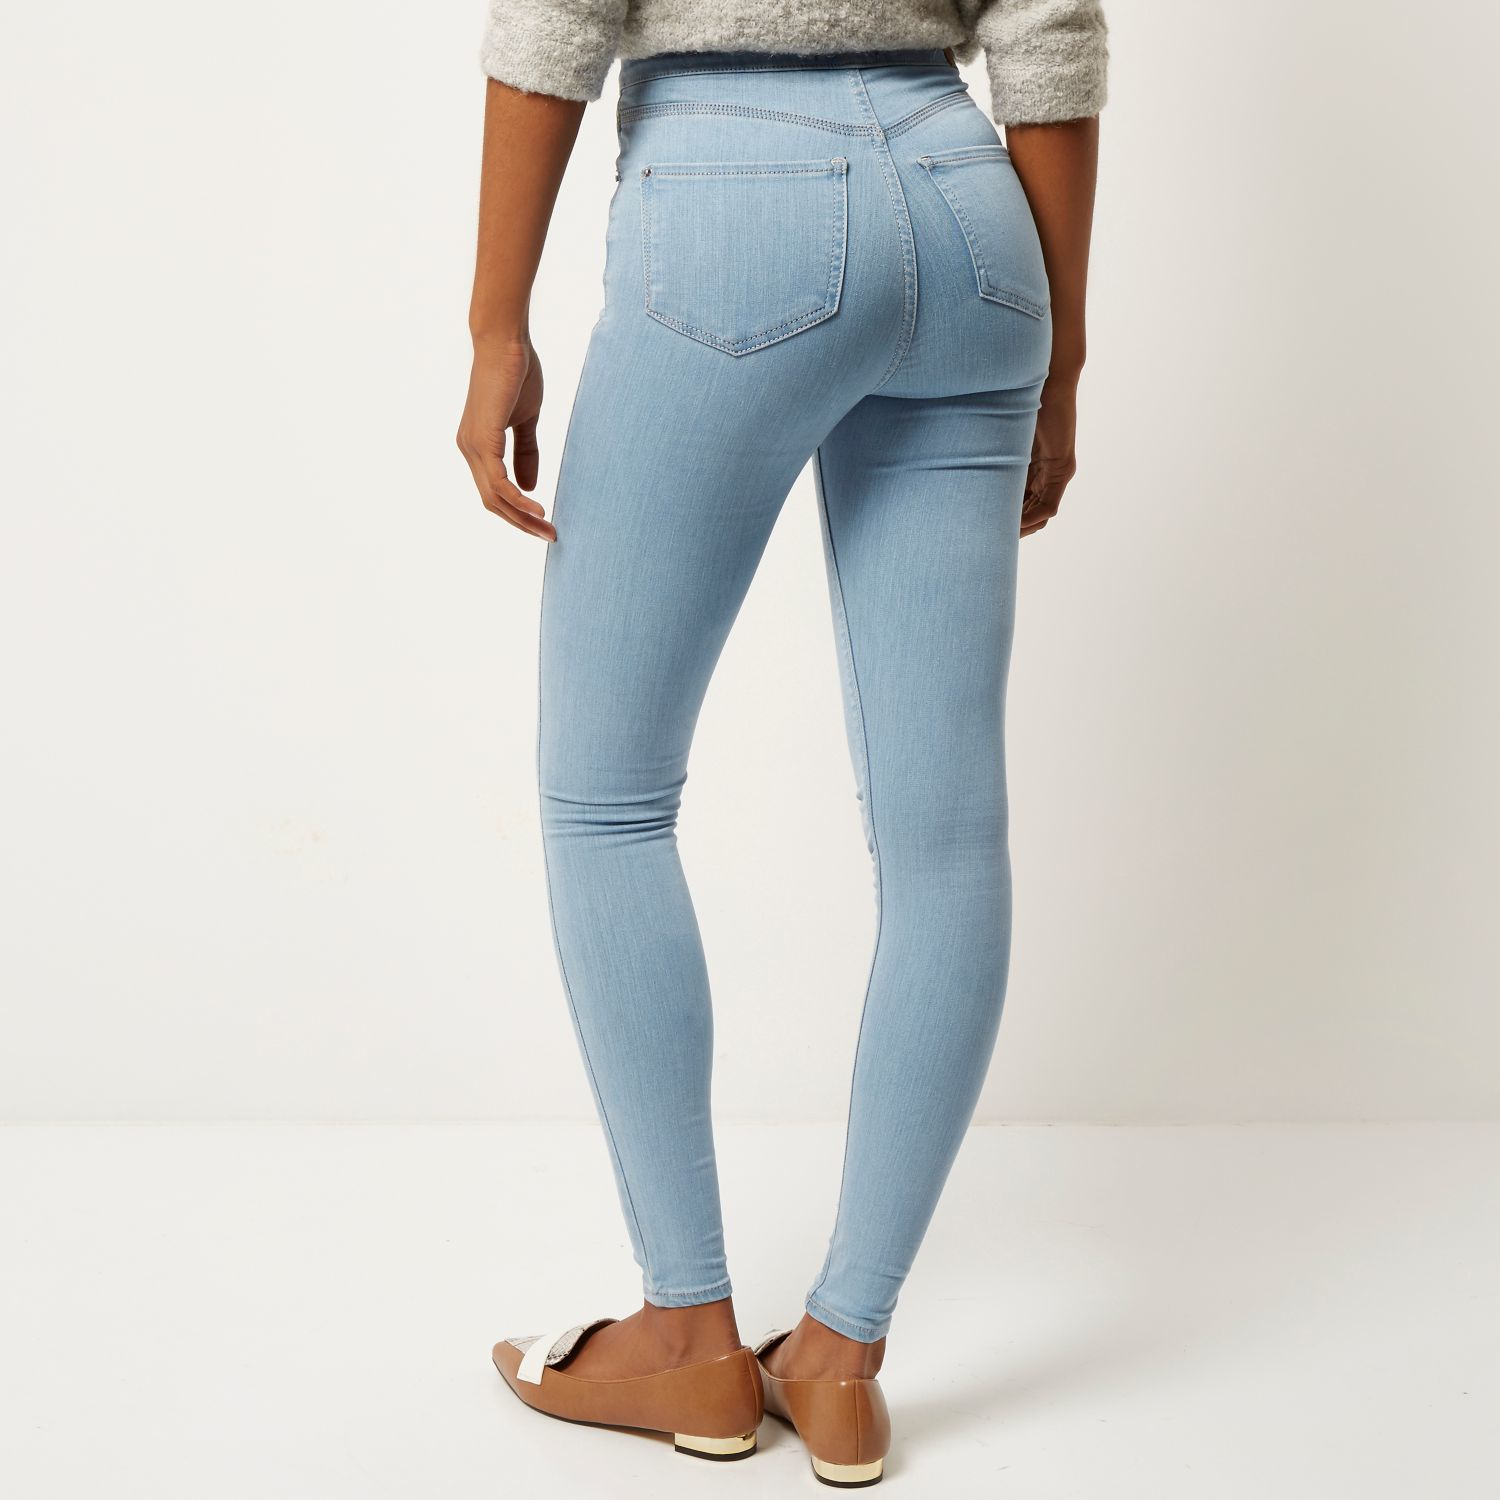 ca99c7c7fee350 River Island Light Wash High Waisted Molly Jeggings in Blue - Lyst